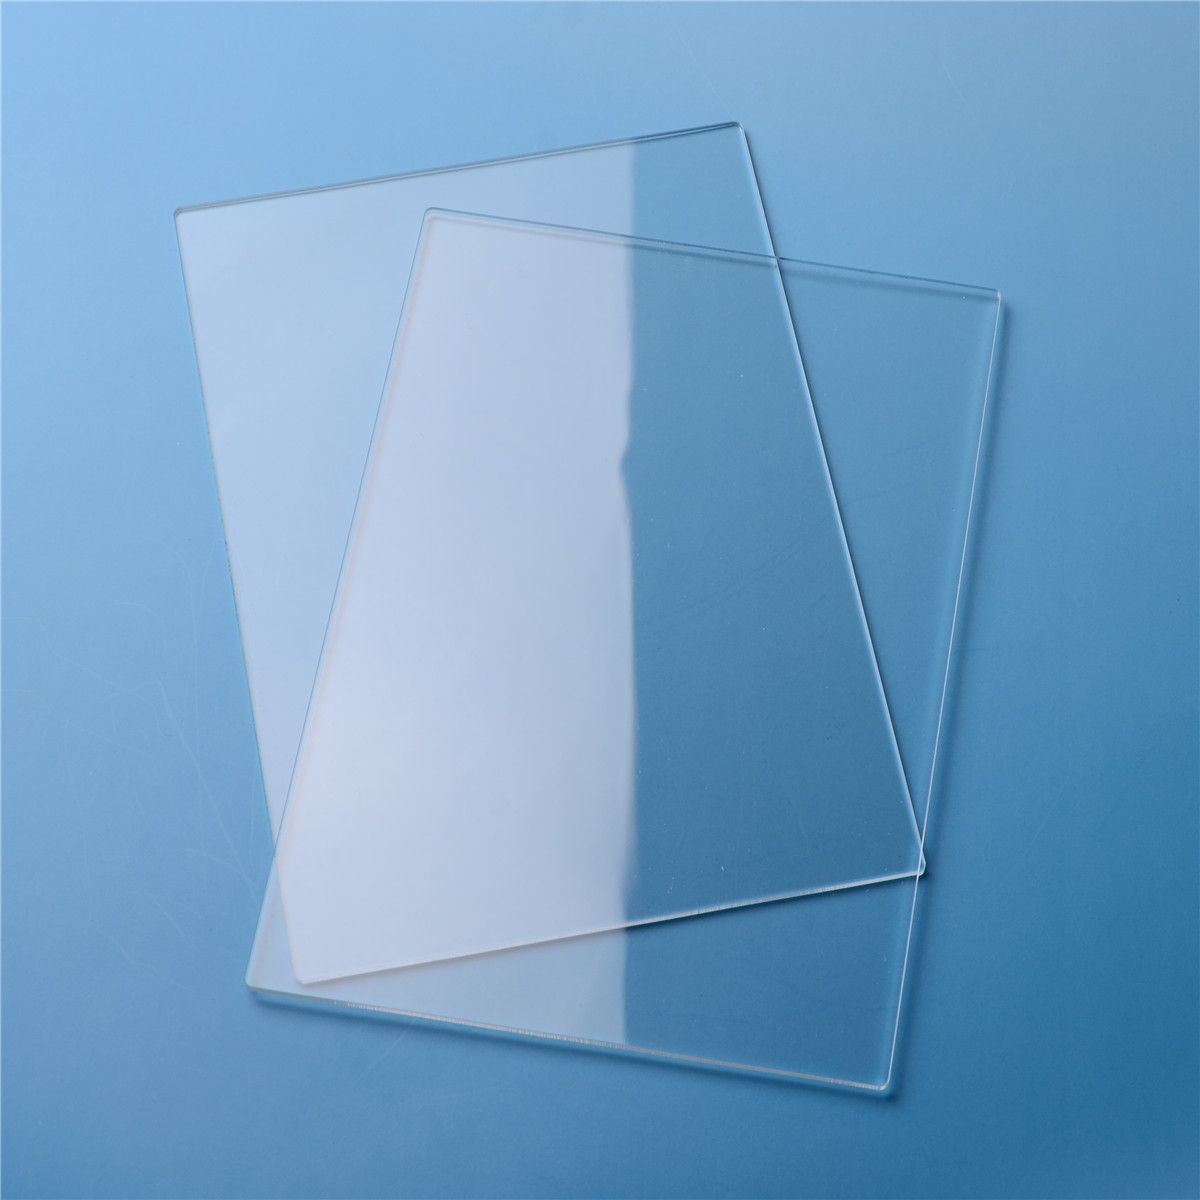 Cheap Block Construction Buy Quality Block Mp3 Directly From China Sheet Metal Hole Puncher Suppliers 2pcs Set 3mm Perspex Sheet Acrylic Sheets Clear Acrylic